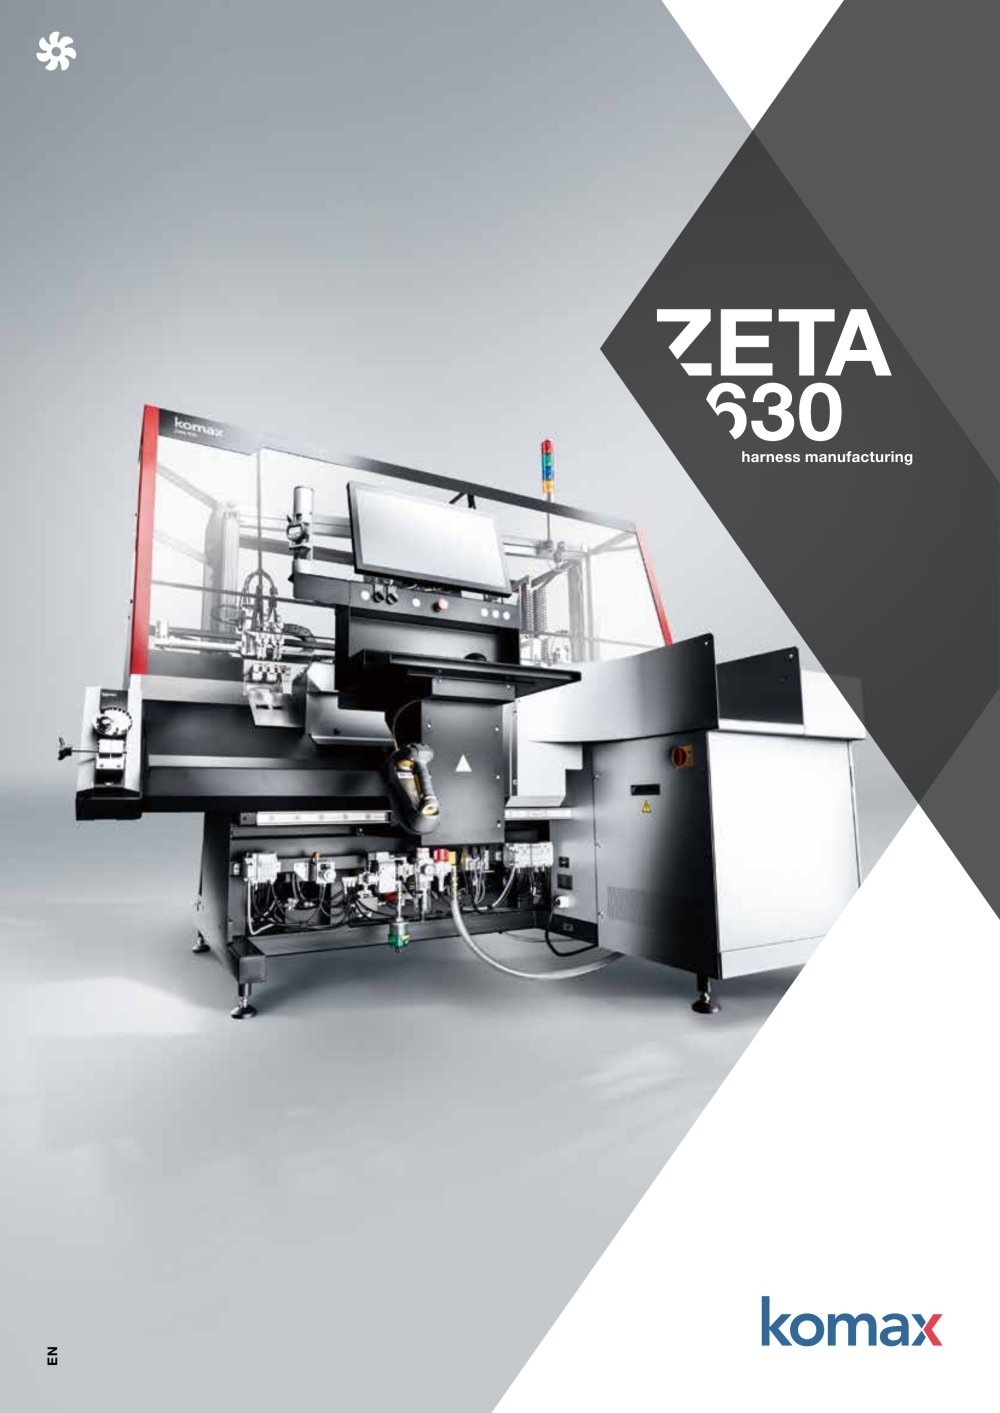 zeta 630 crimping machine 649485_1b zeta 630 crimping machine komax wire pdf catalogue technical komax wire harness machines at highcare.asia